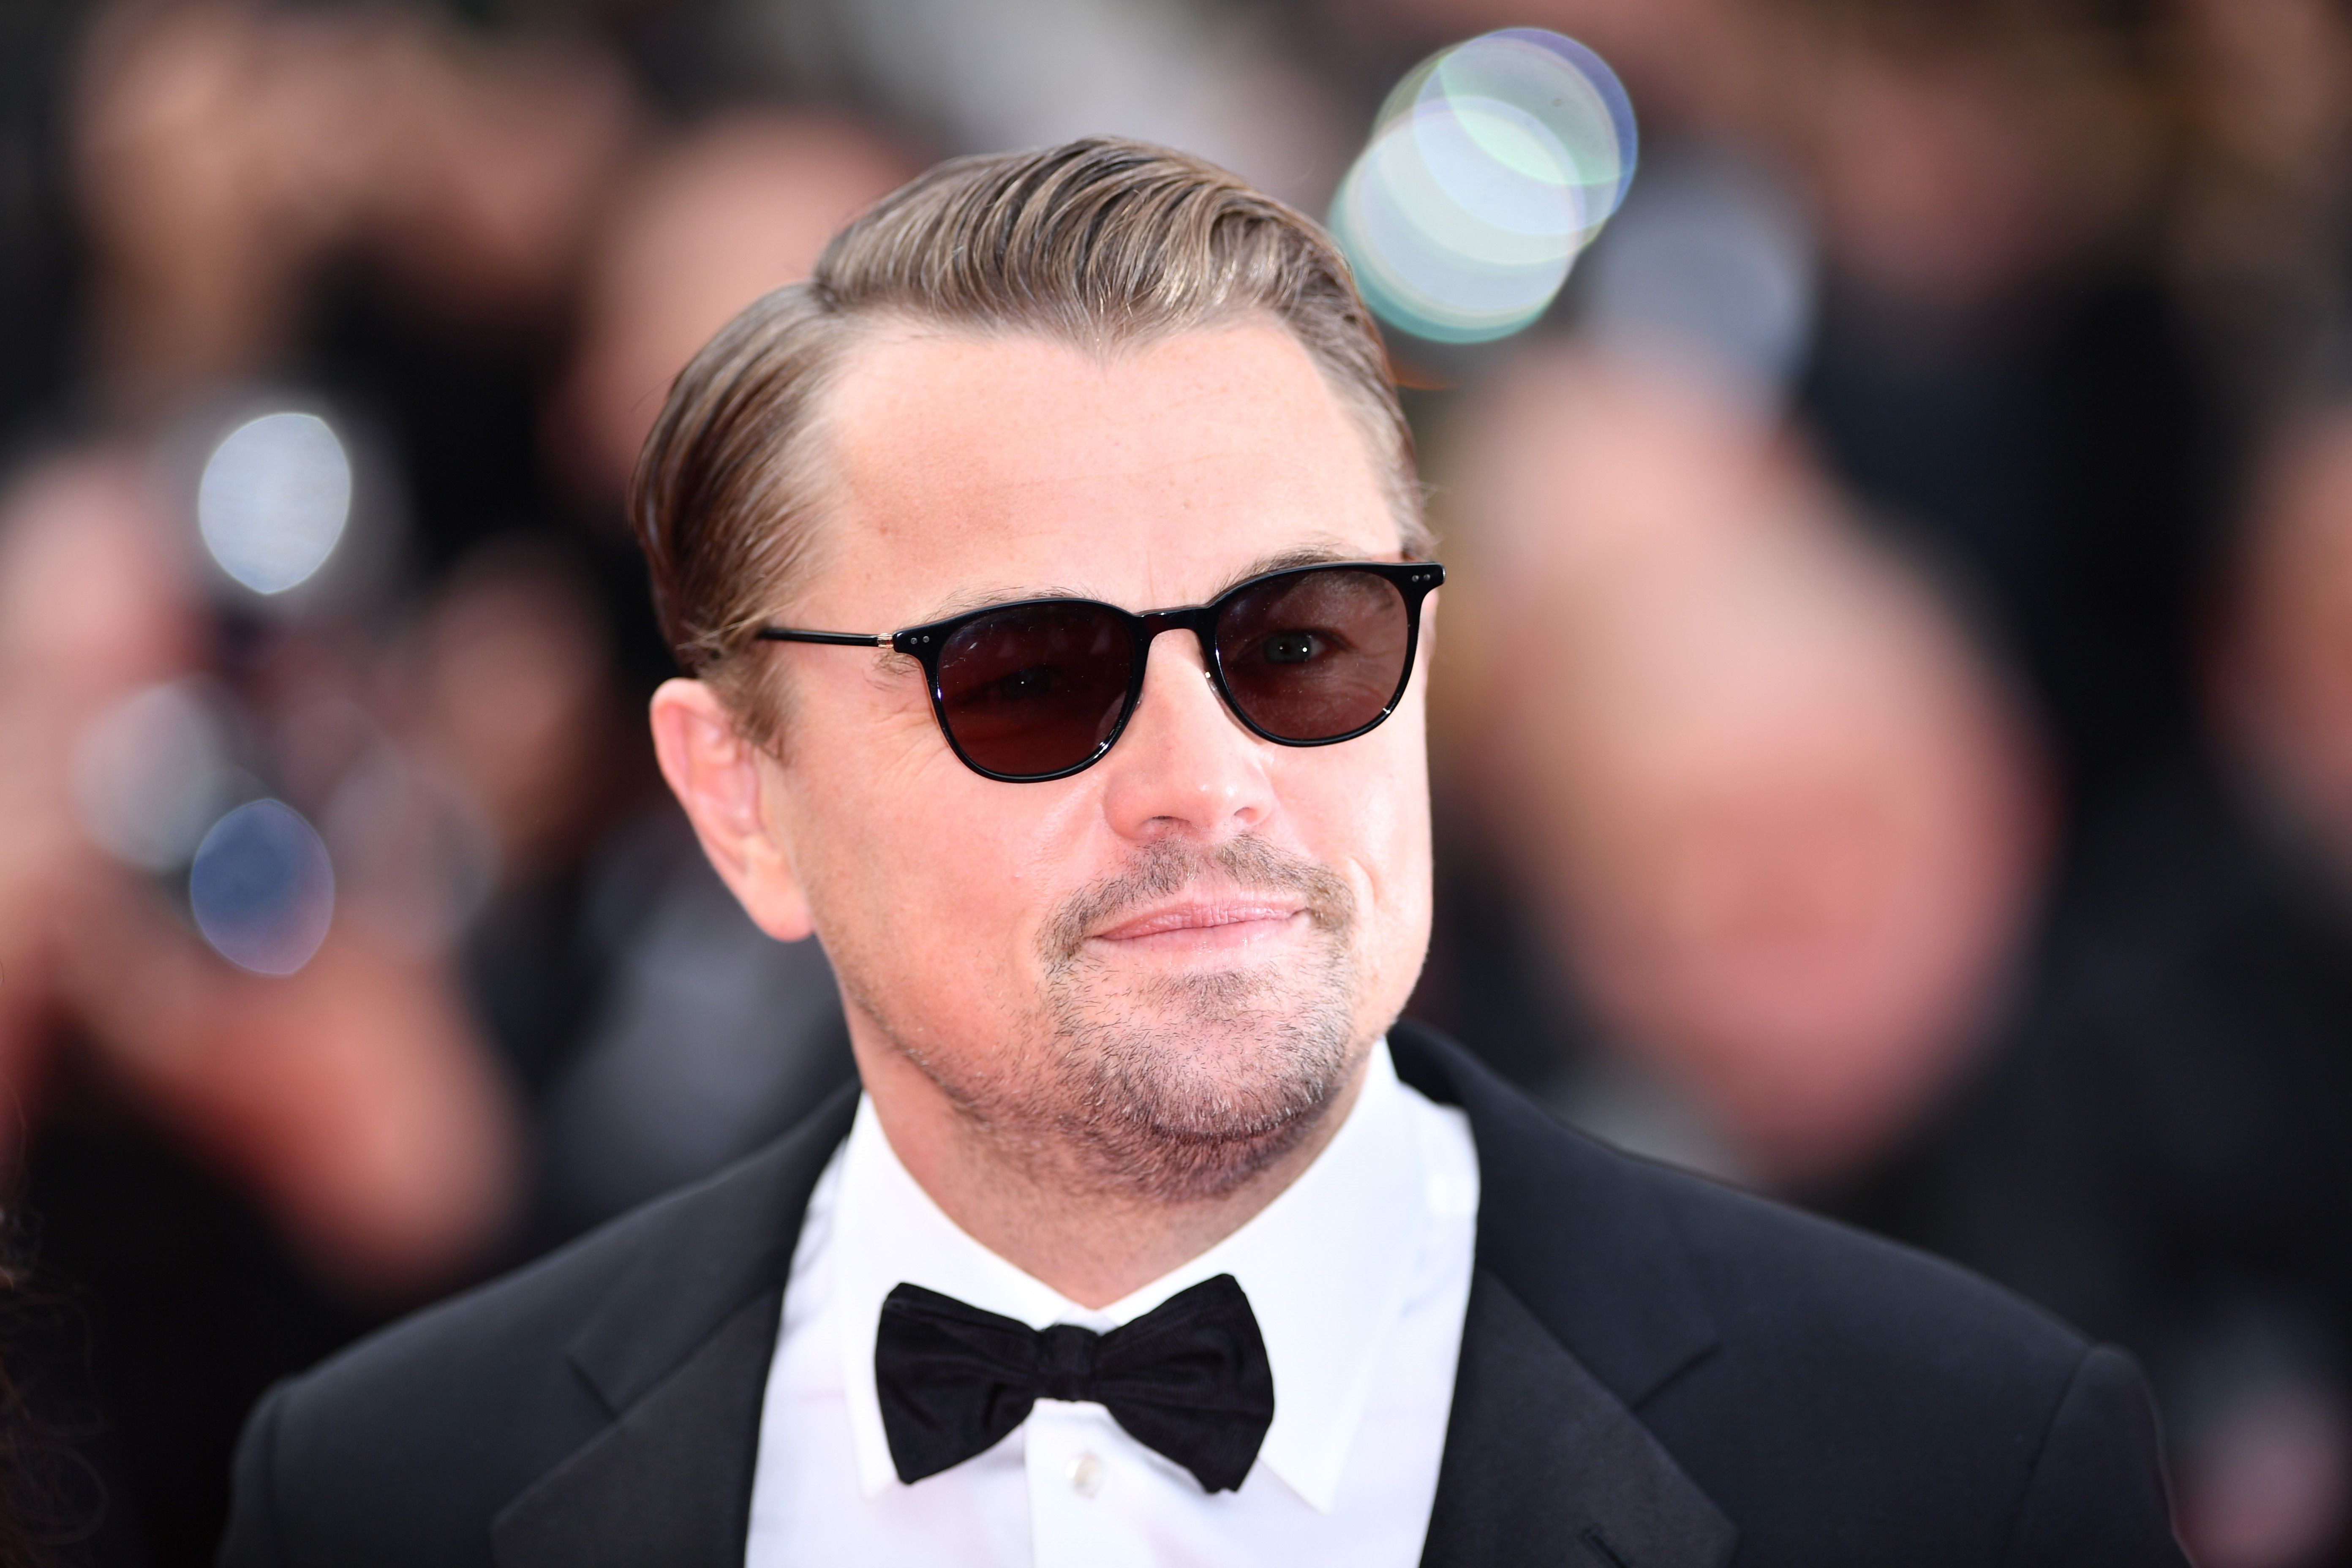 Leonardo DiCaprio's Cannes Red Carpet Sunglasses Are Worth Buying (and Flexing)